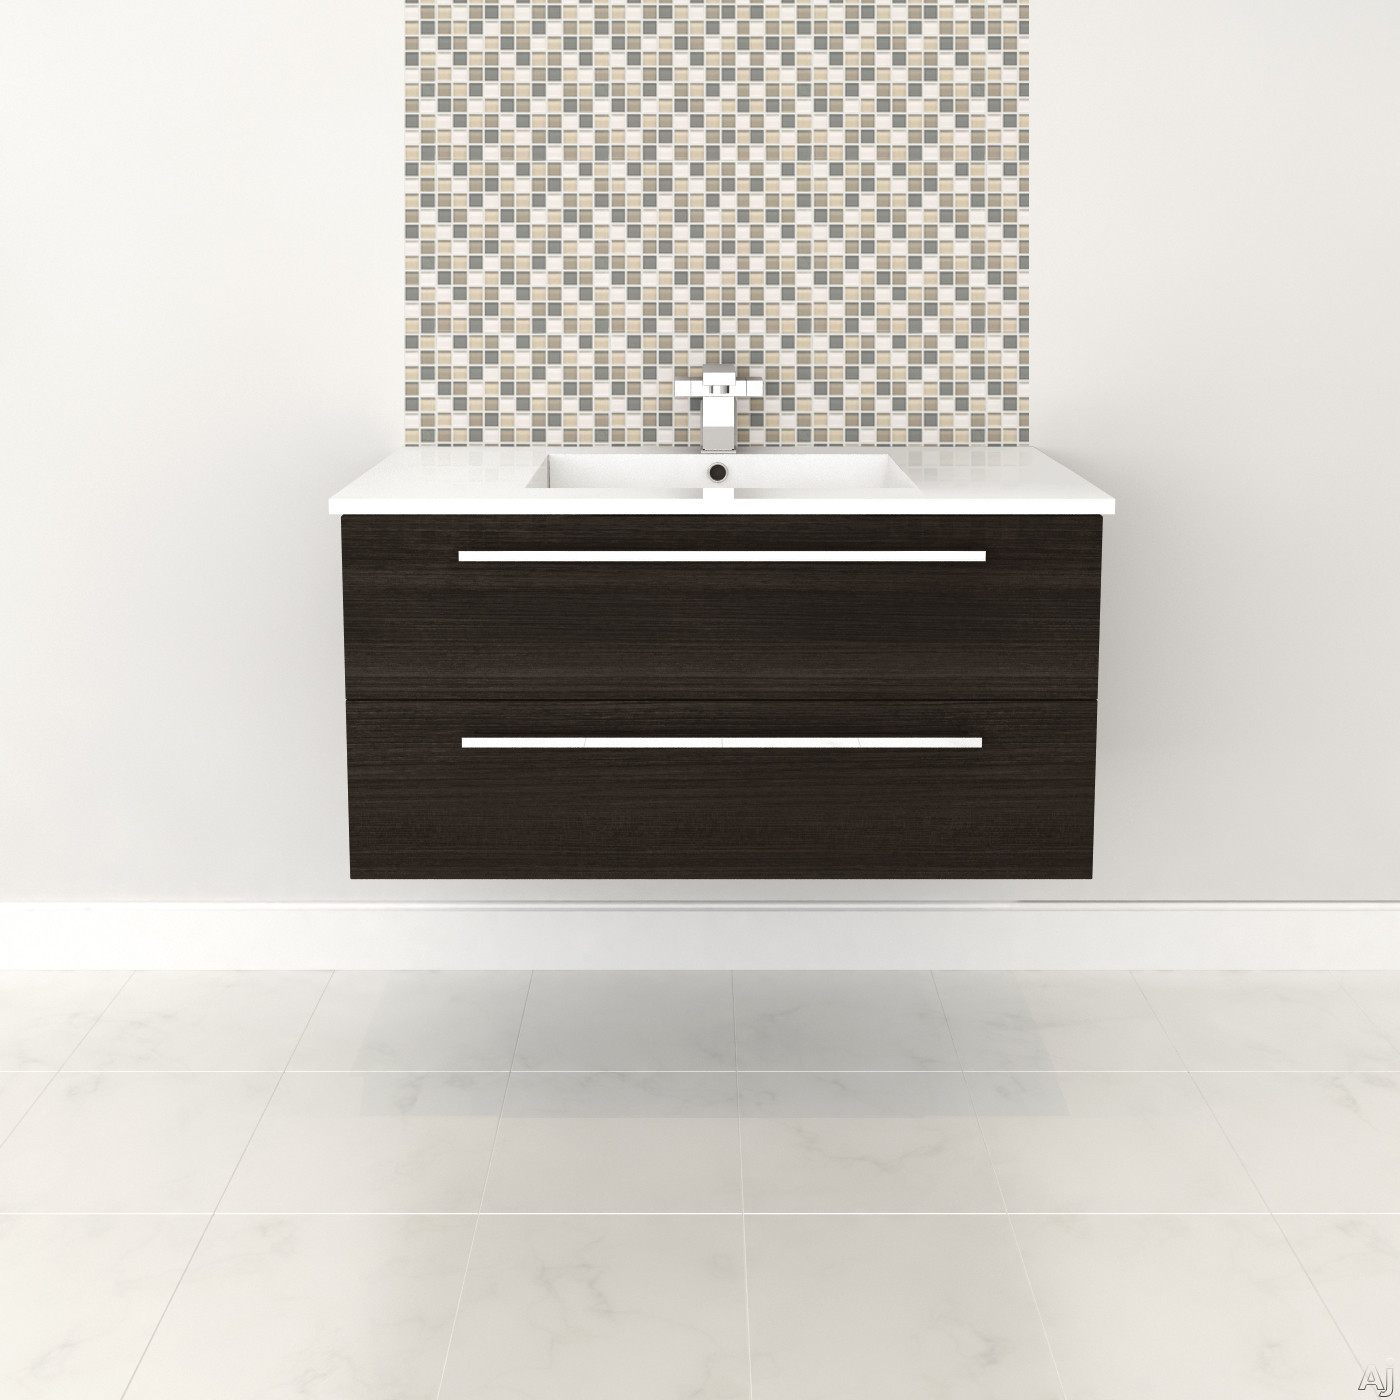 Cutler Kitchen & Bath Silhouette FVDCHOC36 36 Inch Wall Mount Vanity with 2 Soft Close Drawers, Countertop and Sink and Handles Included: Dark Chocolate